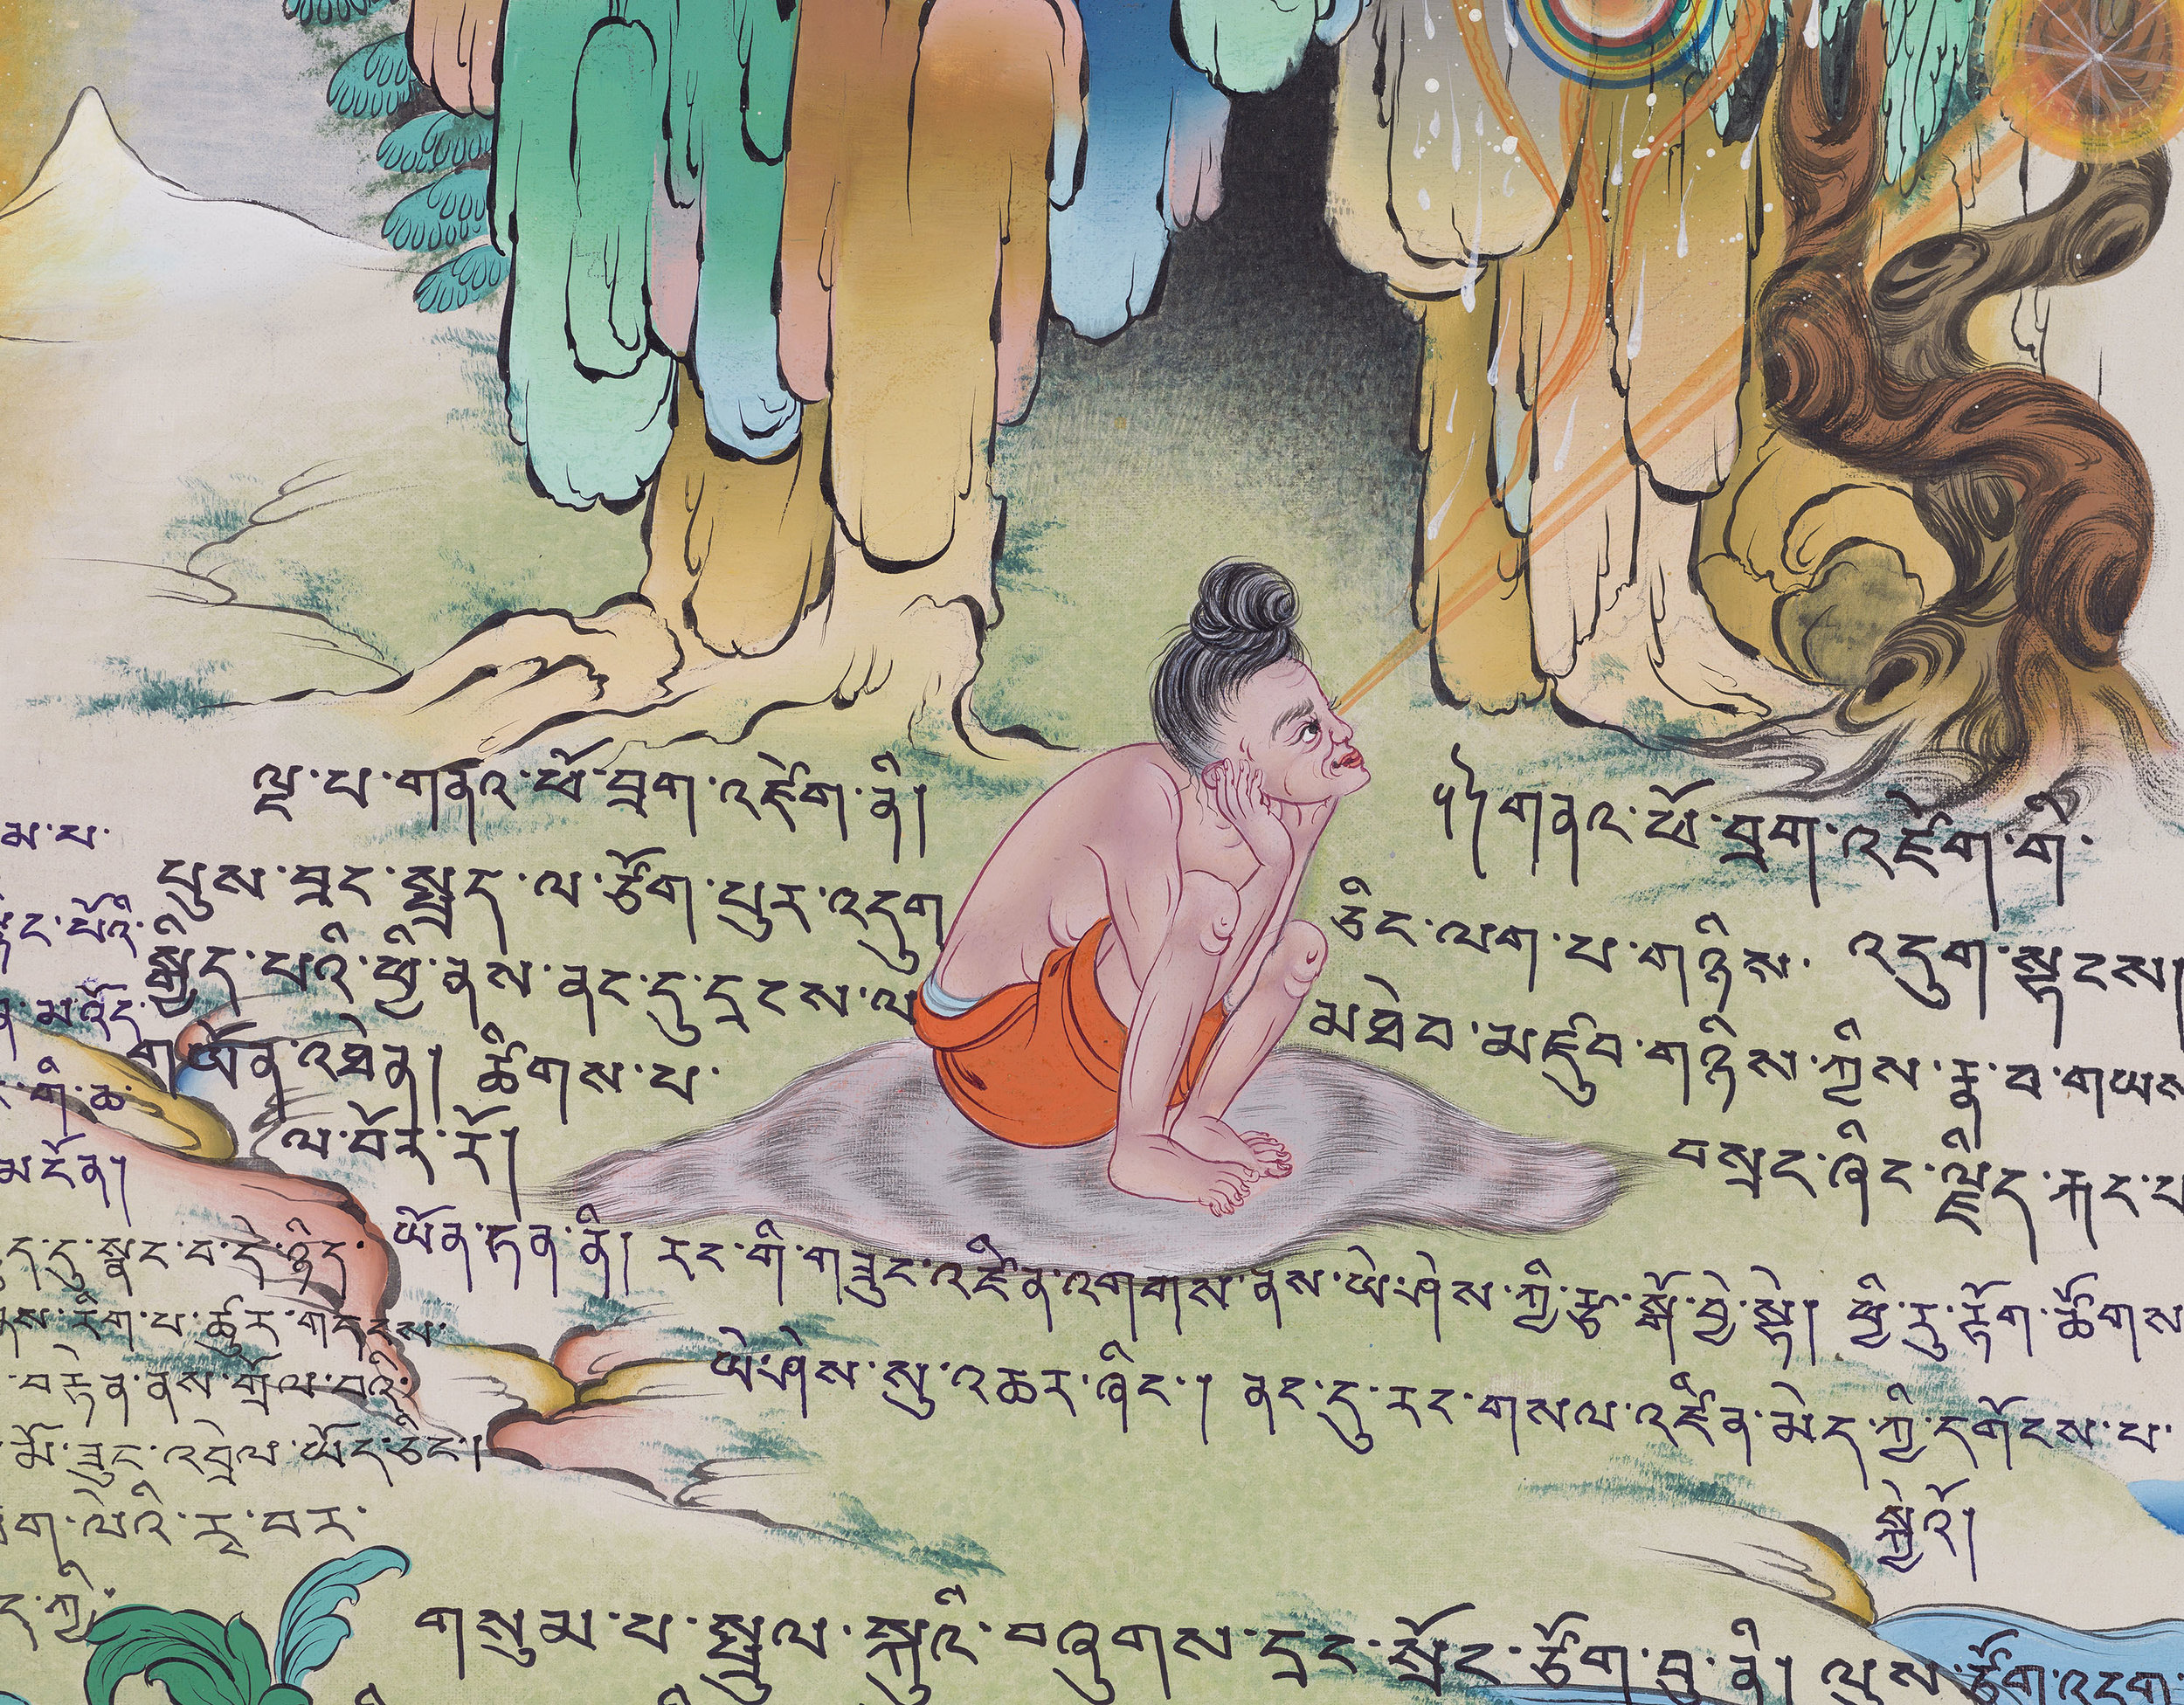 """""""The Wild Sheep Climbing the Crag,"""" a yogic posture that is especially beneficial for arresting dualistic thought and opening the channel of transcendent primordial wisdom. (p.171)"""